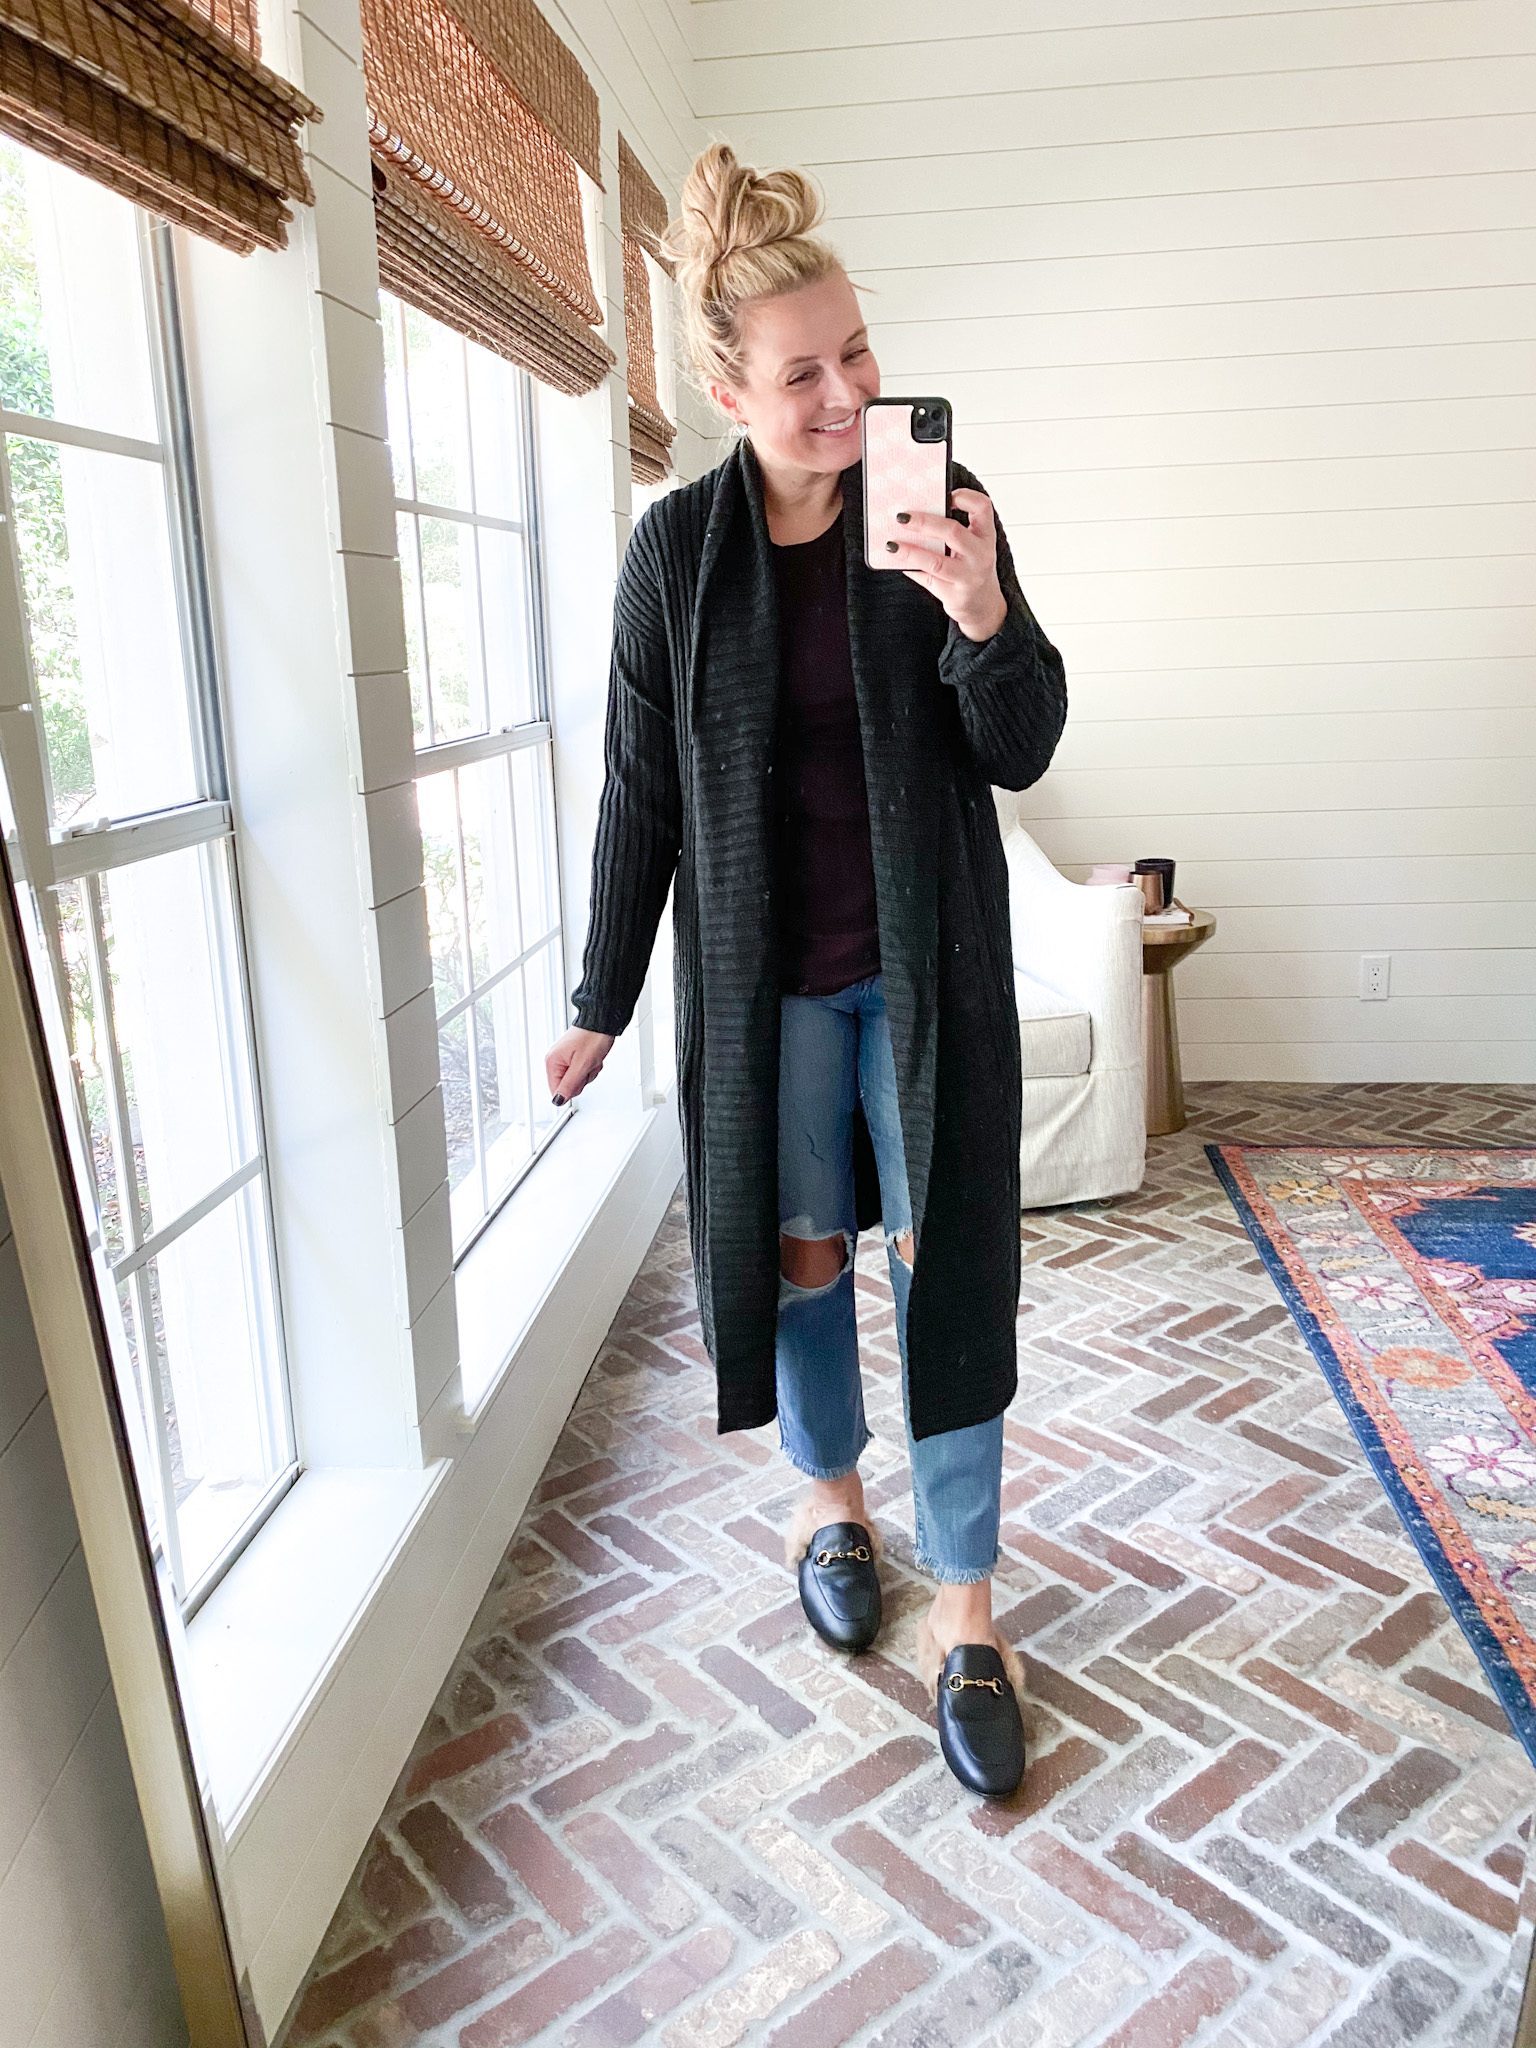 Prime Day by popular Houston fashion blog, Fancy Ashley: image of a woman wearing a Amazon black longline cardigan, distressed jeans, and black mules.